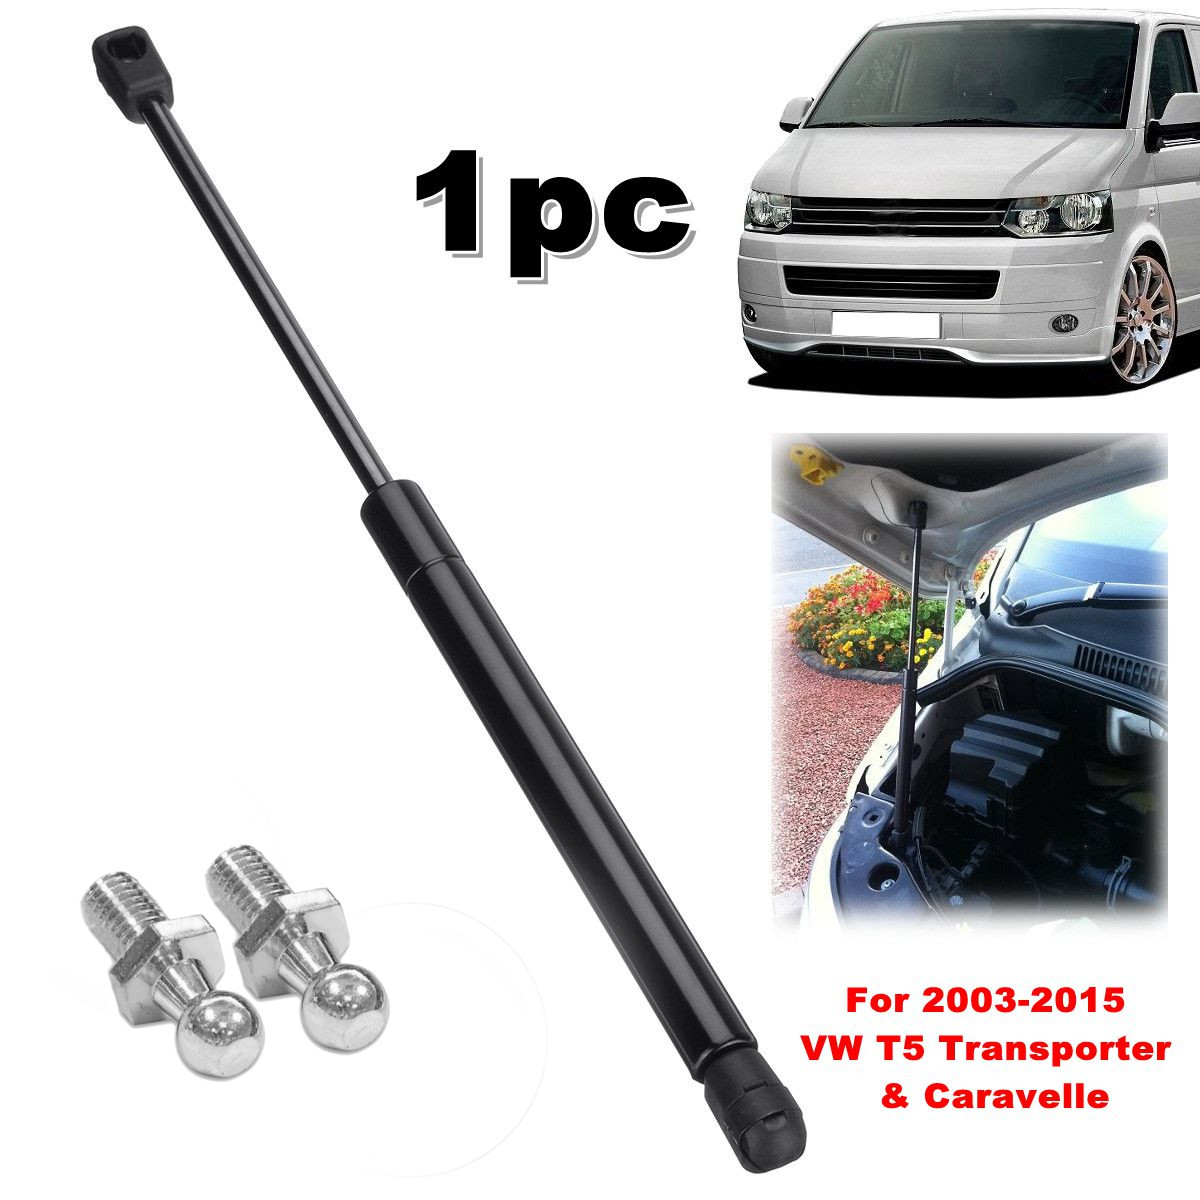 Hood-Support Front-Bonnet Transporter Gas-Strut 2003 Caravelle Vw T5 Volkswagen for 7E0823359 title=